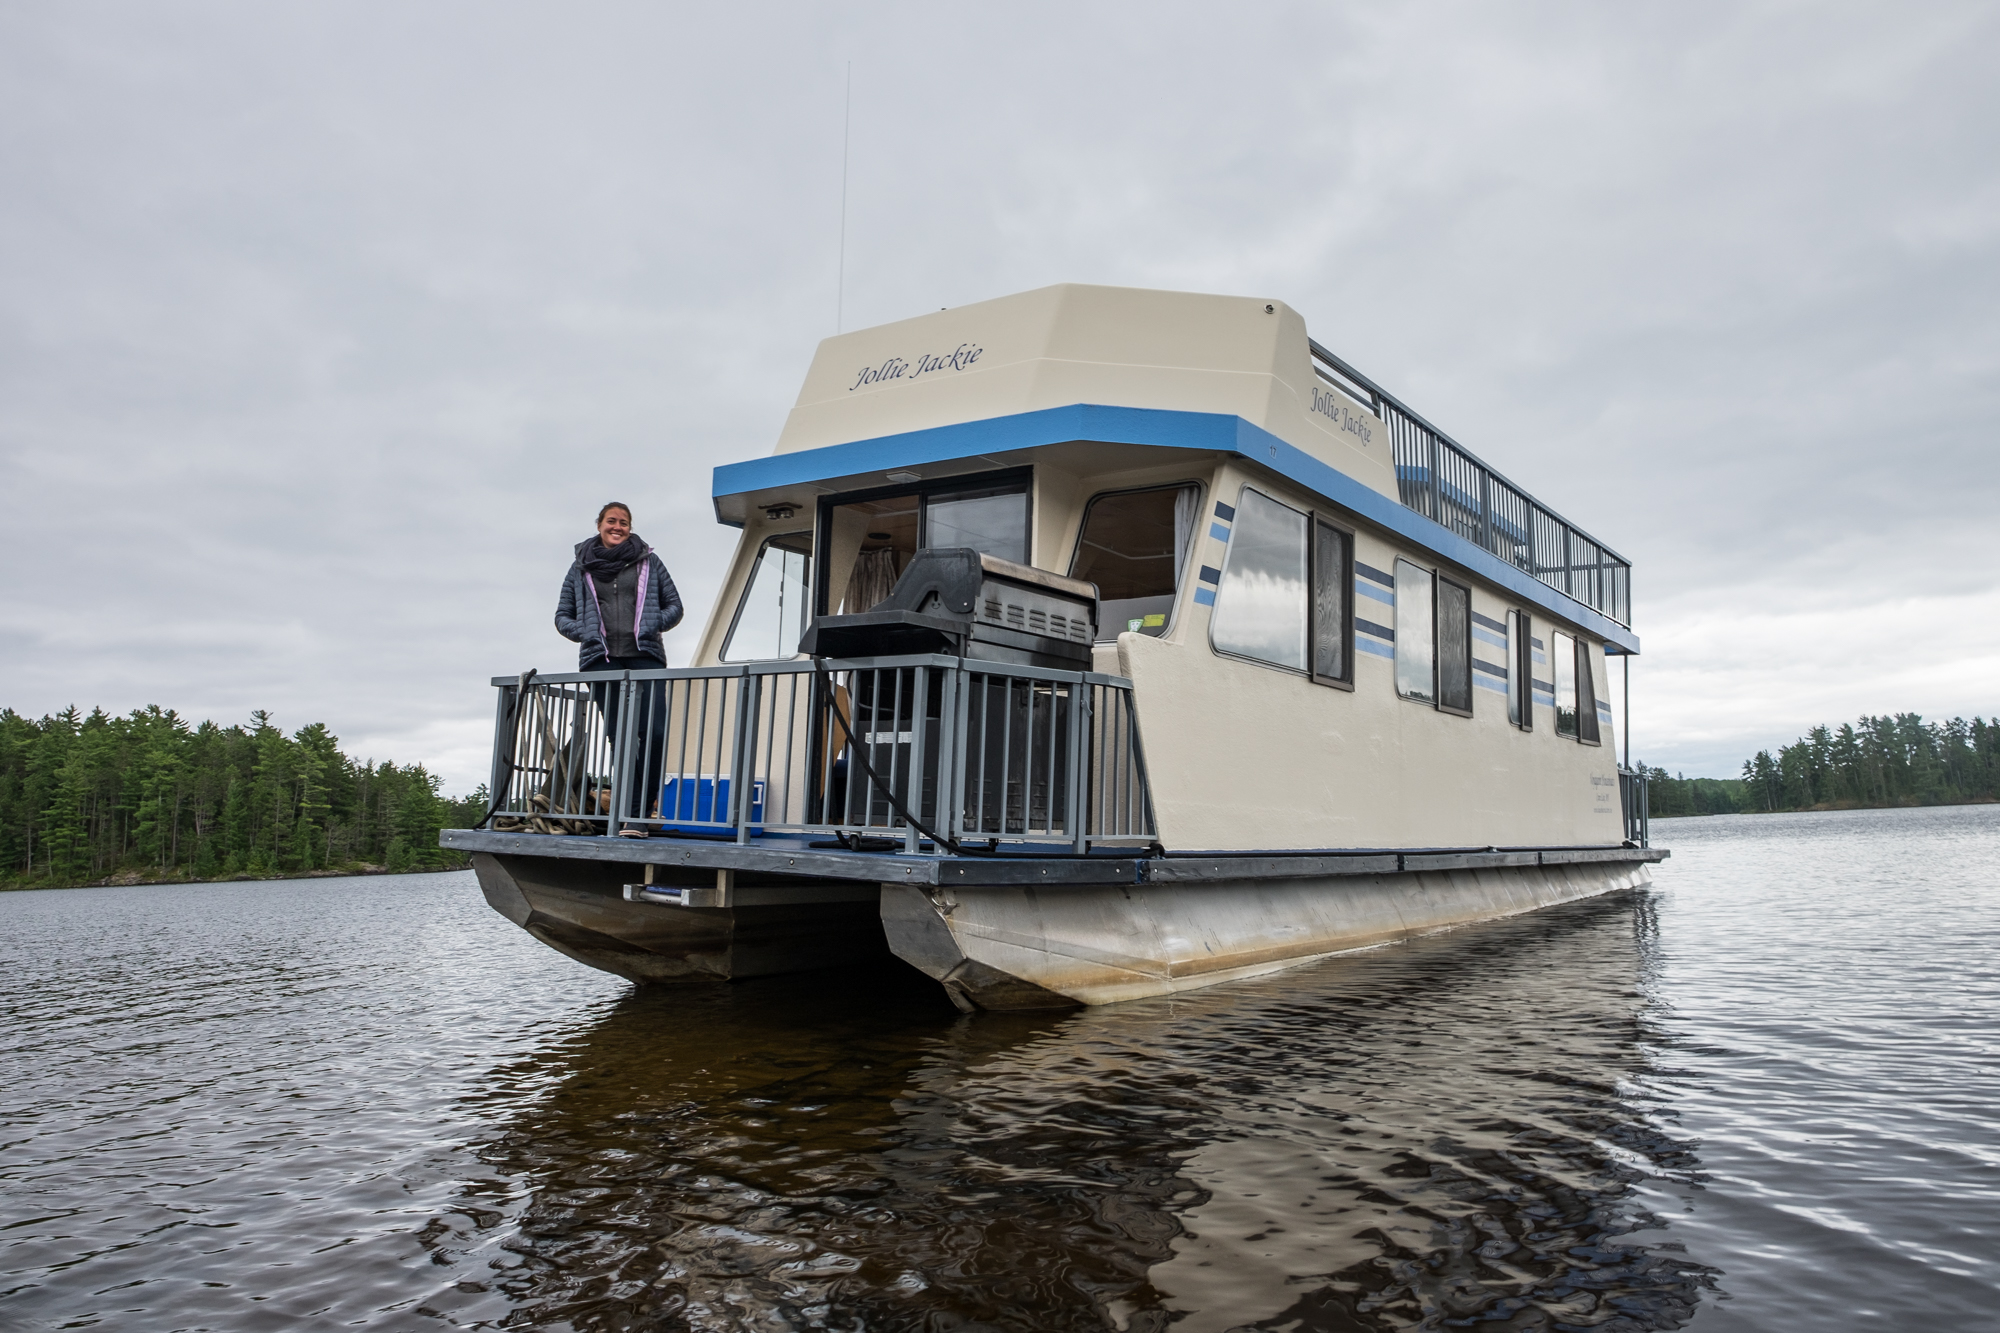 Notice the tilt of the houseboat? We ran into a little bit of an issue......